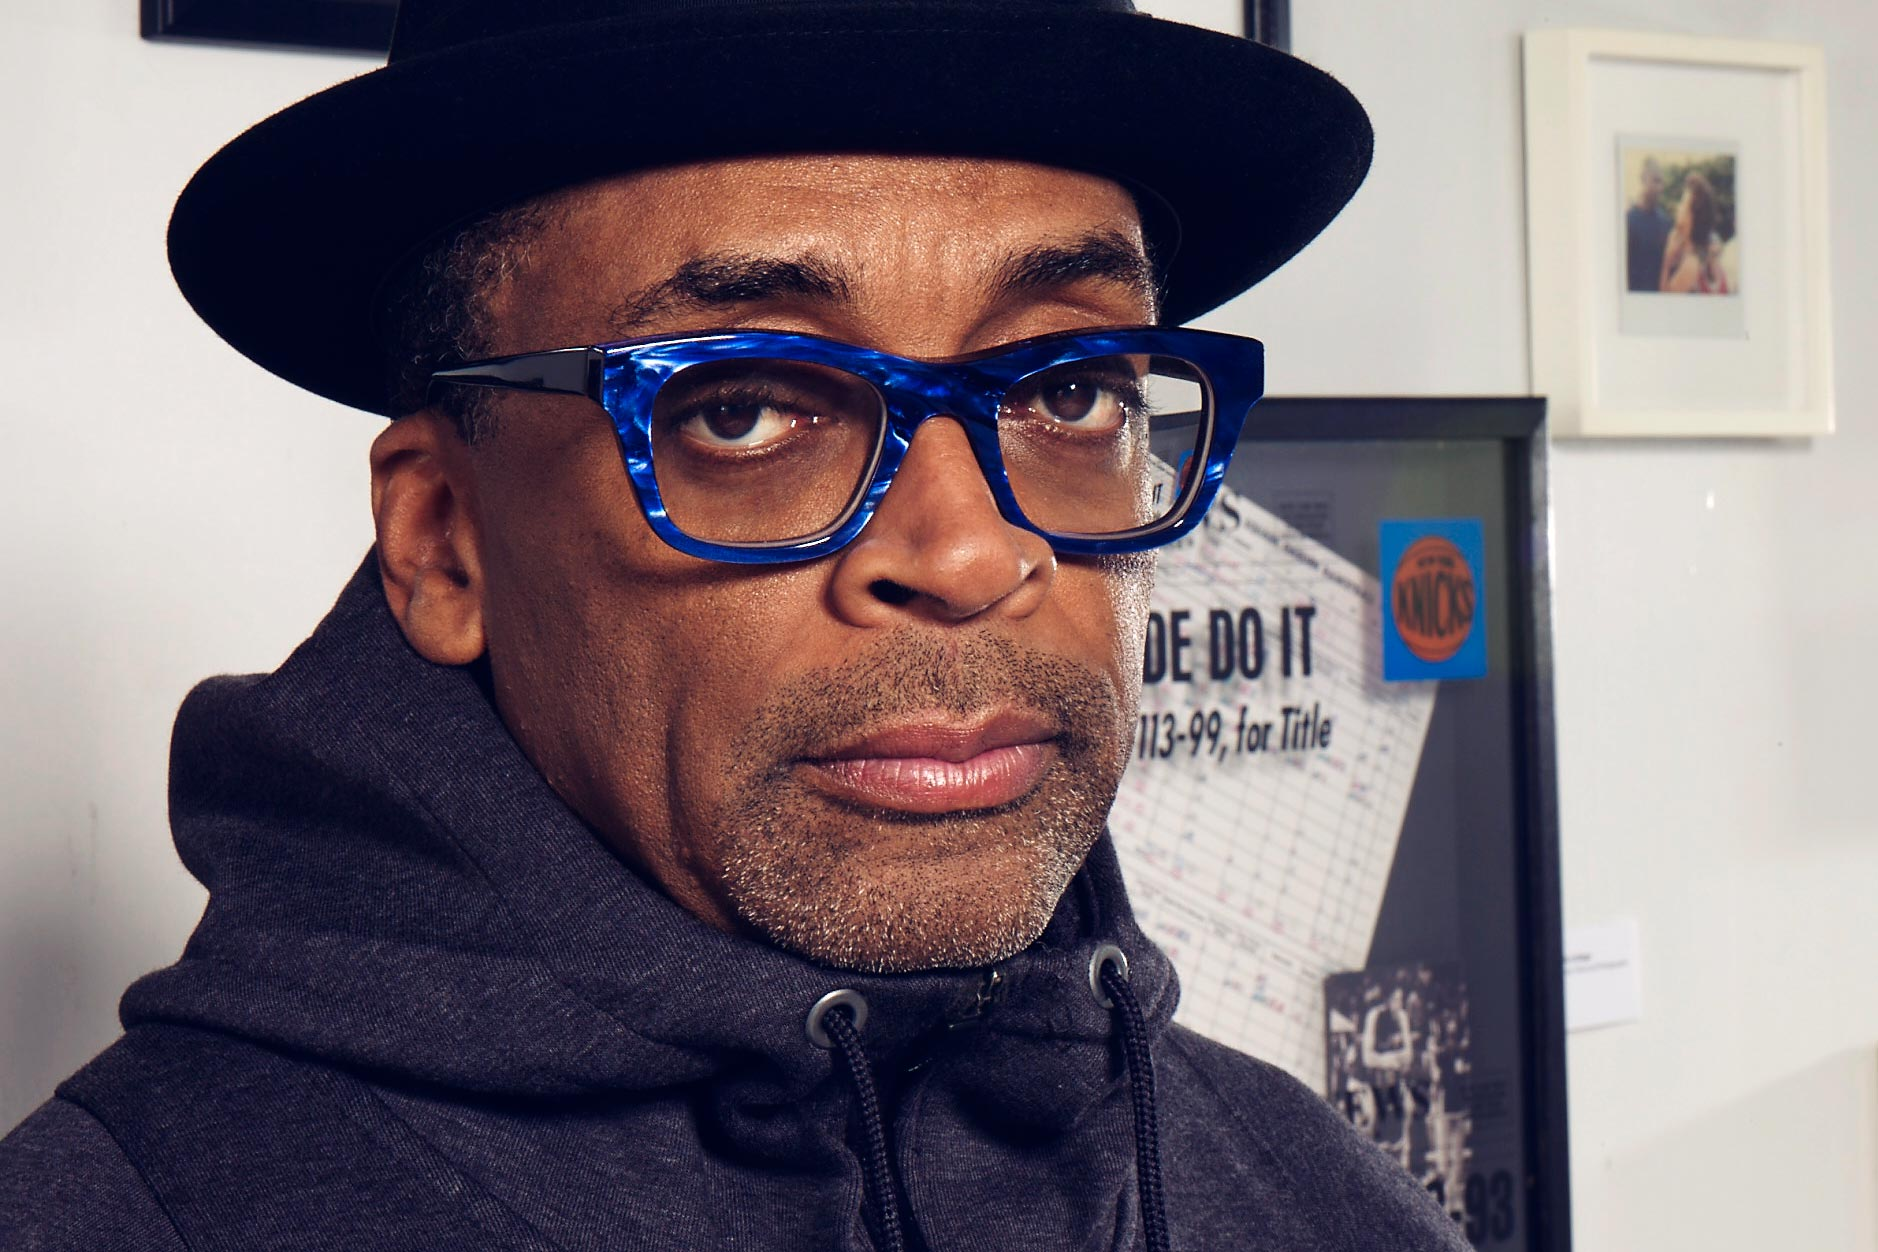 Renowned filmmaker Spike Lee will be one of the headliners at this year's Virginia Film Festival in November. (Photo by Marc Baptiste)